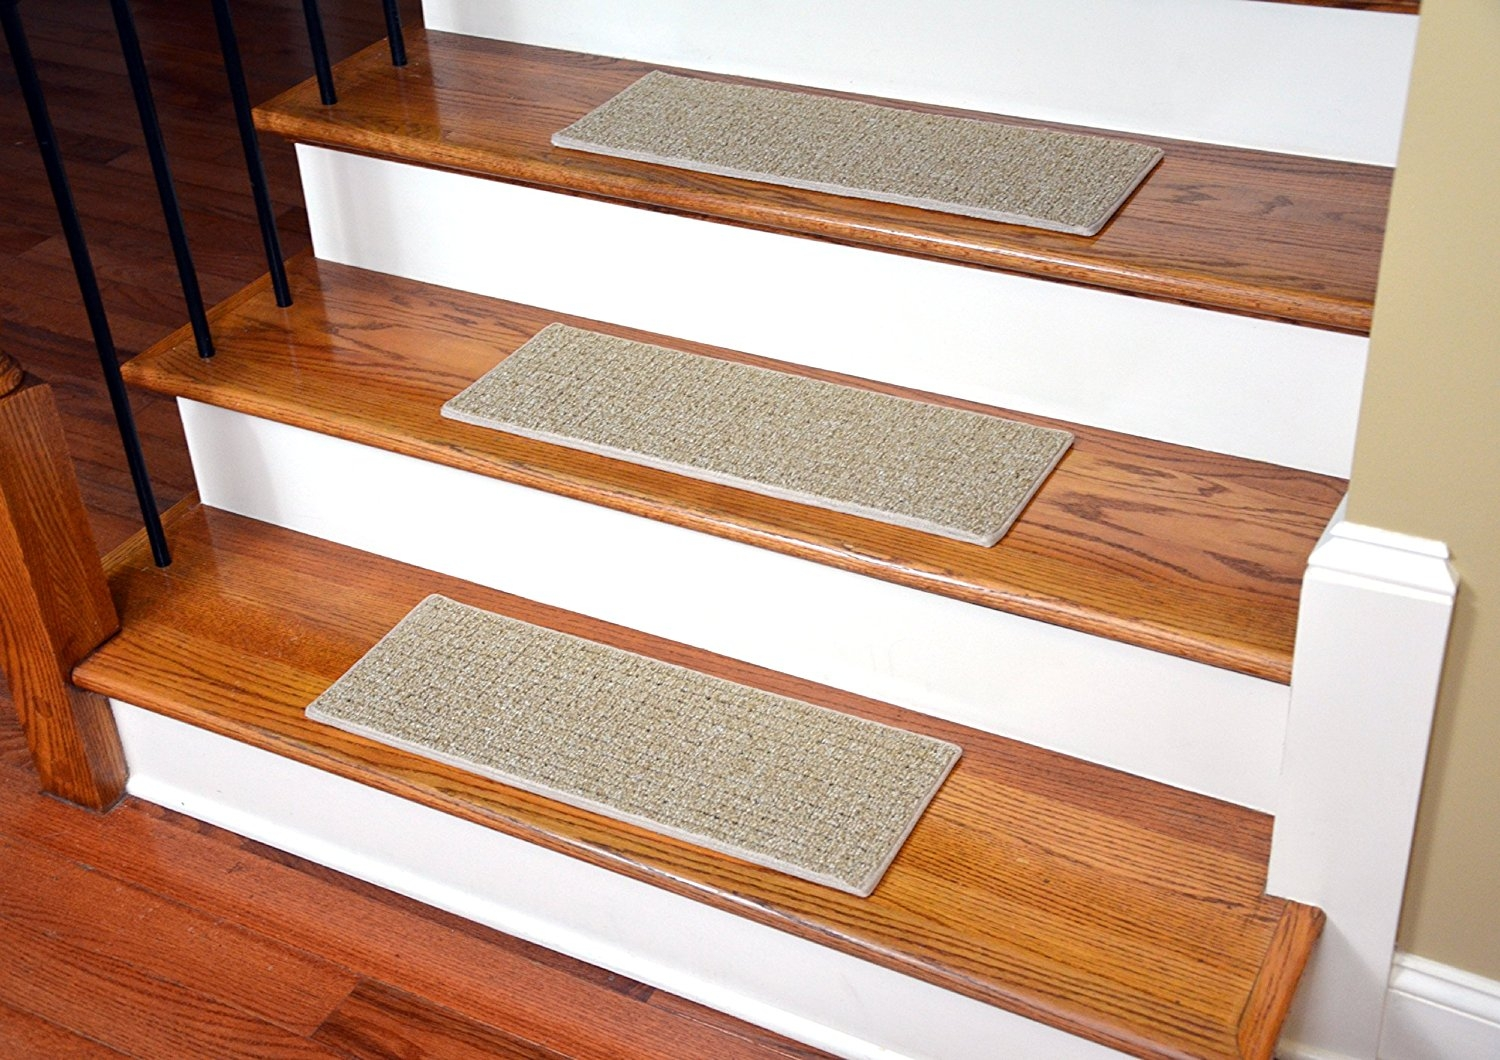 Dean Indooroutdoor Pet Friendly Tape Free Non Slip Carpet Stair With Carpet Stair Treads Non Slip (View 6 of 20)